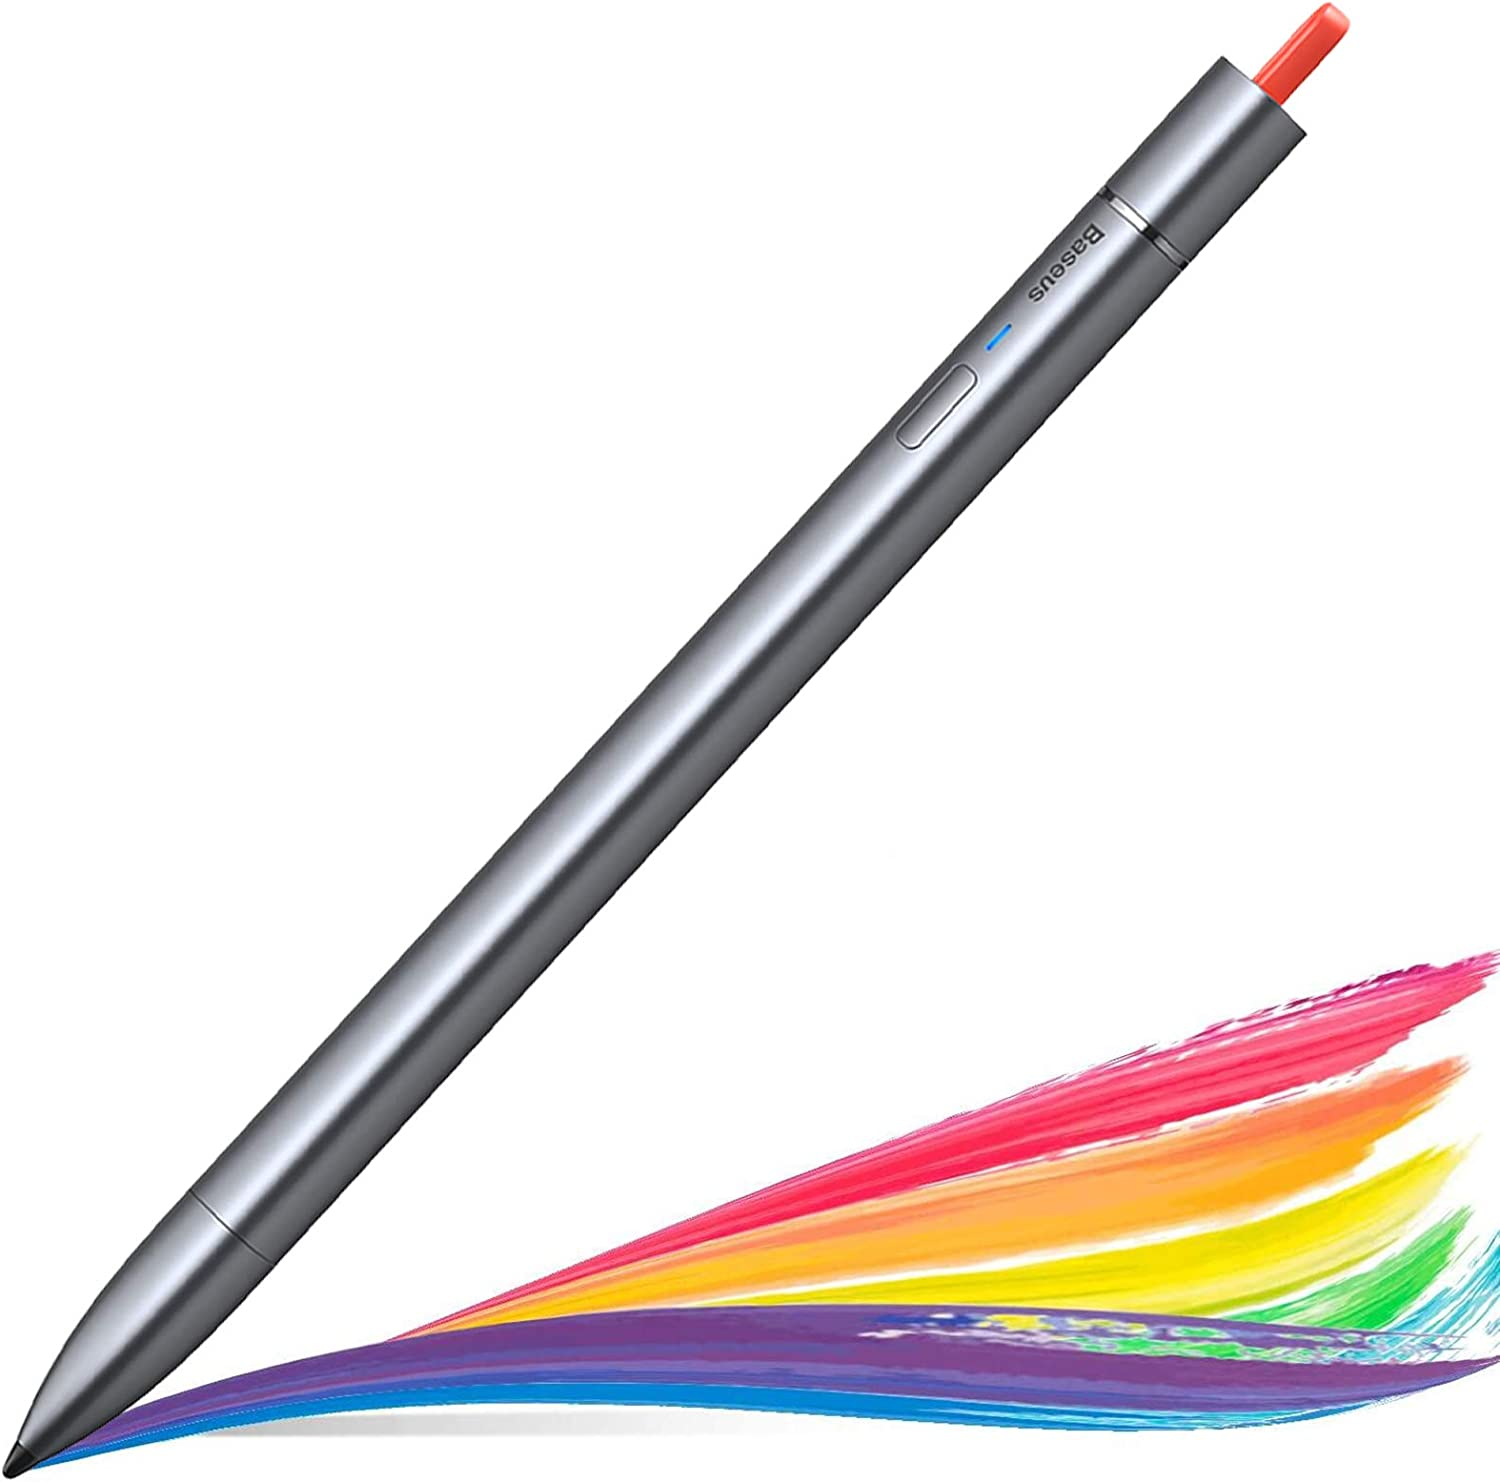 Baseus Stylus Pen for iPad, iPad Pencil with Magnetic Design and Palm Rejection for iPad 7th 6th Generation, iPad Pro 2020 2018 (11/12.9 inch), iPad Mini 5th Gen, iPad Air 3rd Gen